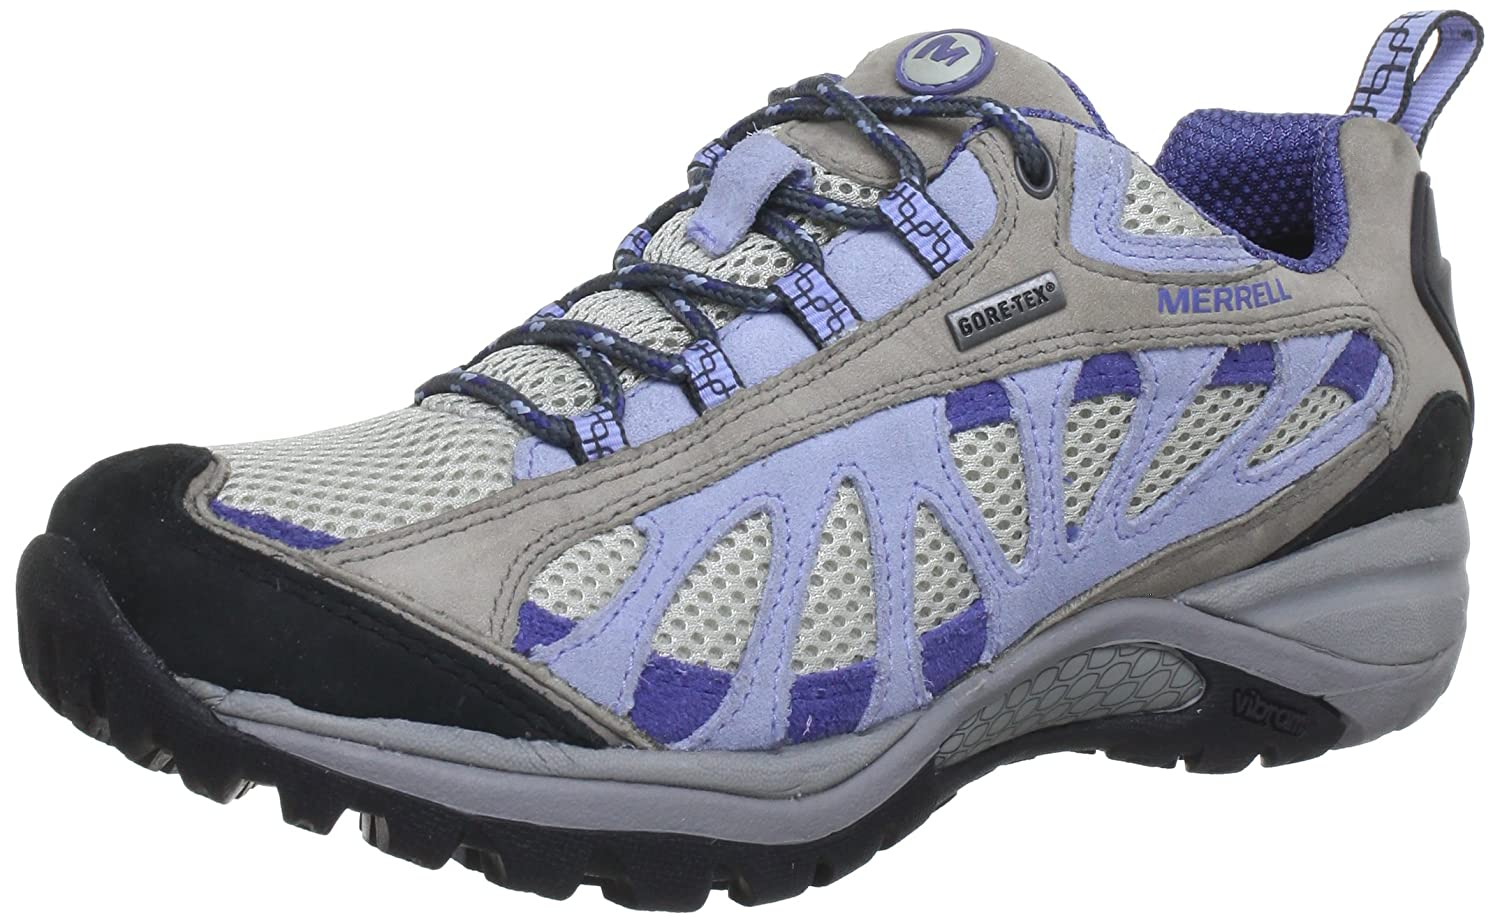 95f53d34b136 Merrell Womens SIREN VENT GTX 2 Trekking   Hiking Shoes multi-coloured  Mehrfarbig (DRIZZLE PERIWINKLE) Size  40  Amazon.co.uk  Shoes   Bags